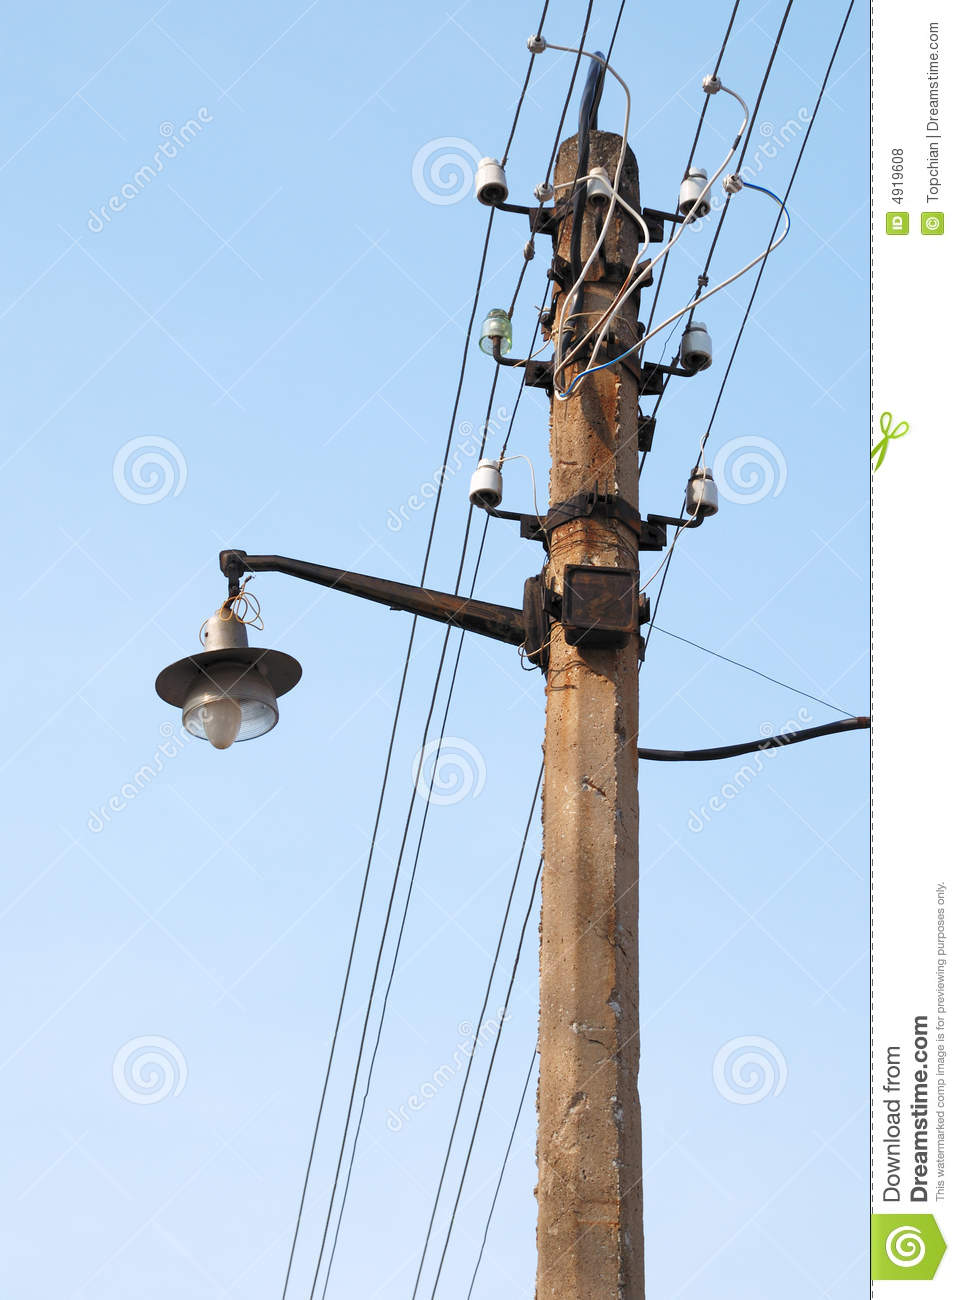 Sreet Lamp And Wires Wire Center Digit Binary Counter Circuit Diagram Tradeoficcom Old Style Street Lantern With Stock Photo Image Of Electric Rh Dreamstime Com